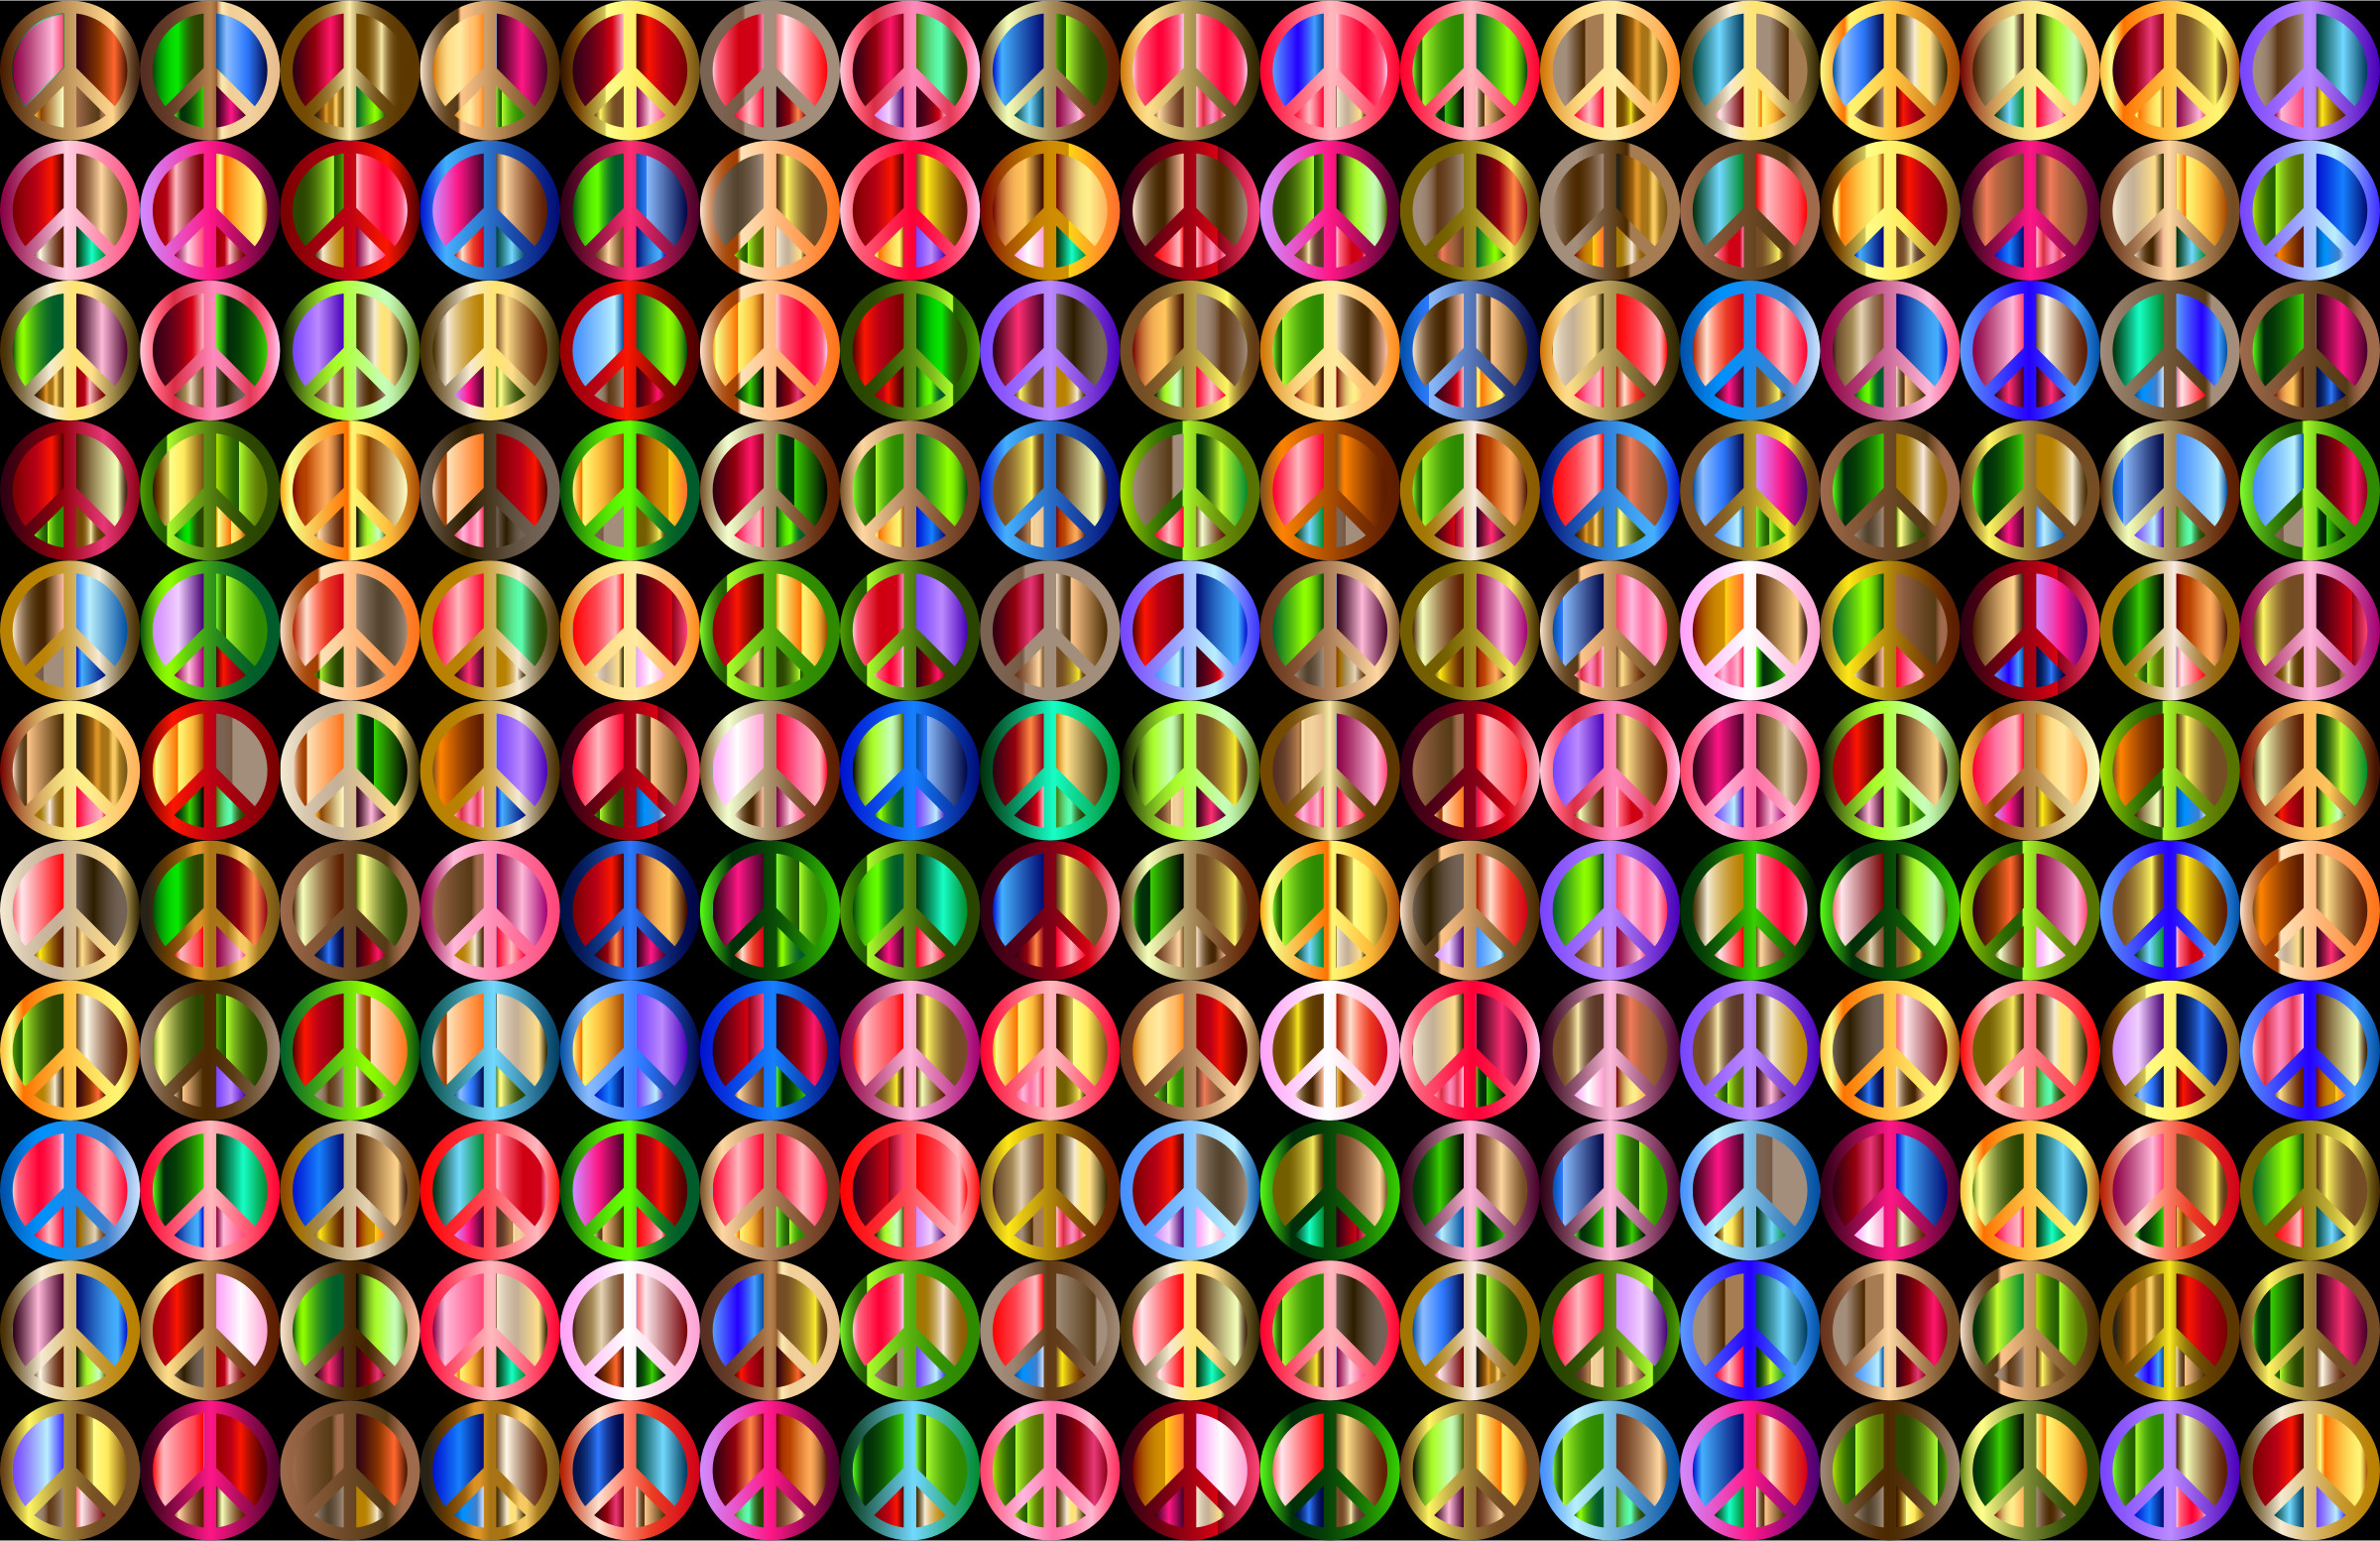 Peace sign wallpapers photo collection abstract peace symbol wallpaper voltagebd Gallery